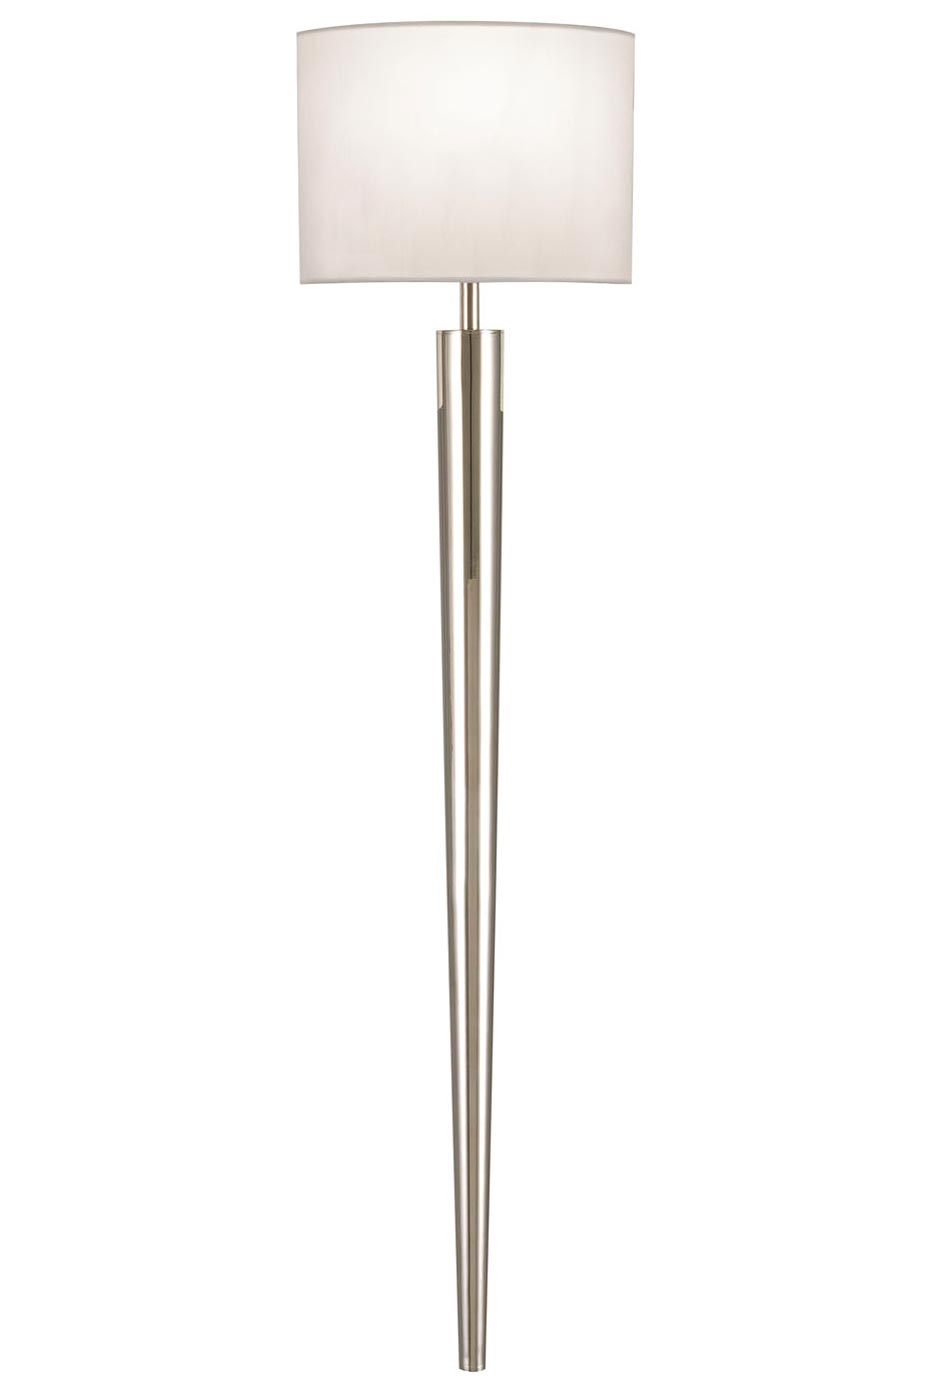 Applique fine Grosvenor Square finition nickel poli. Fine Art Lamps.